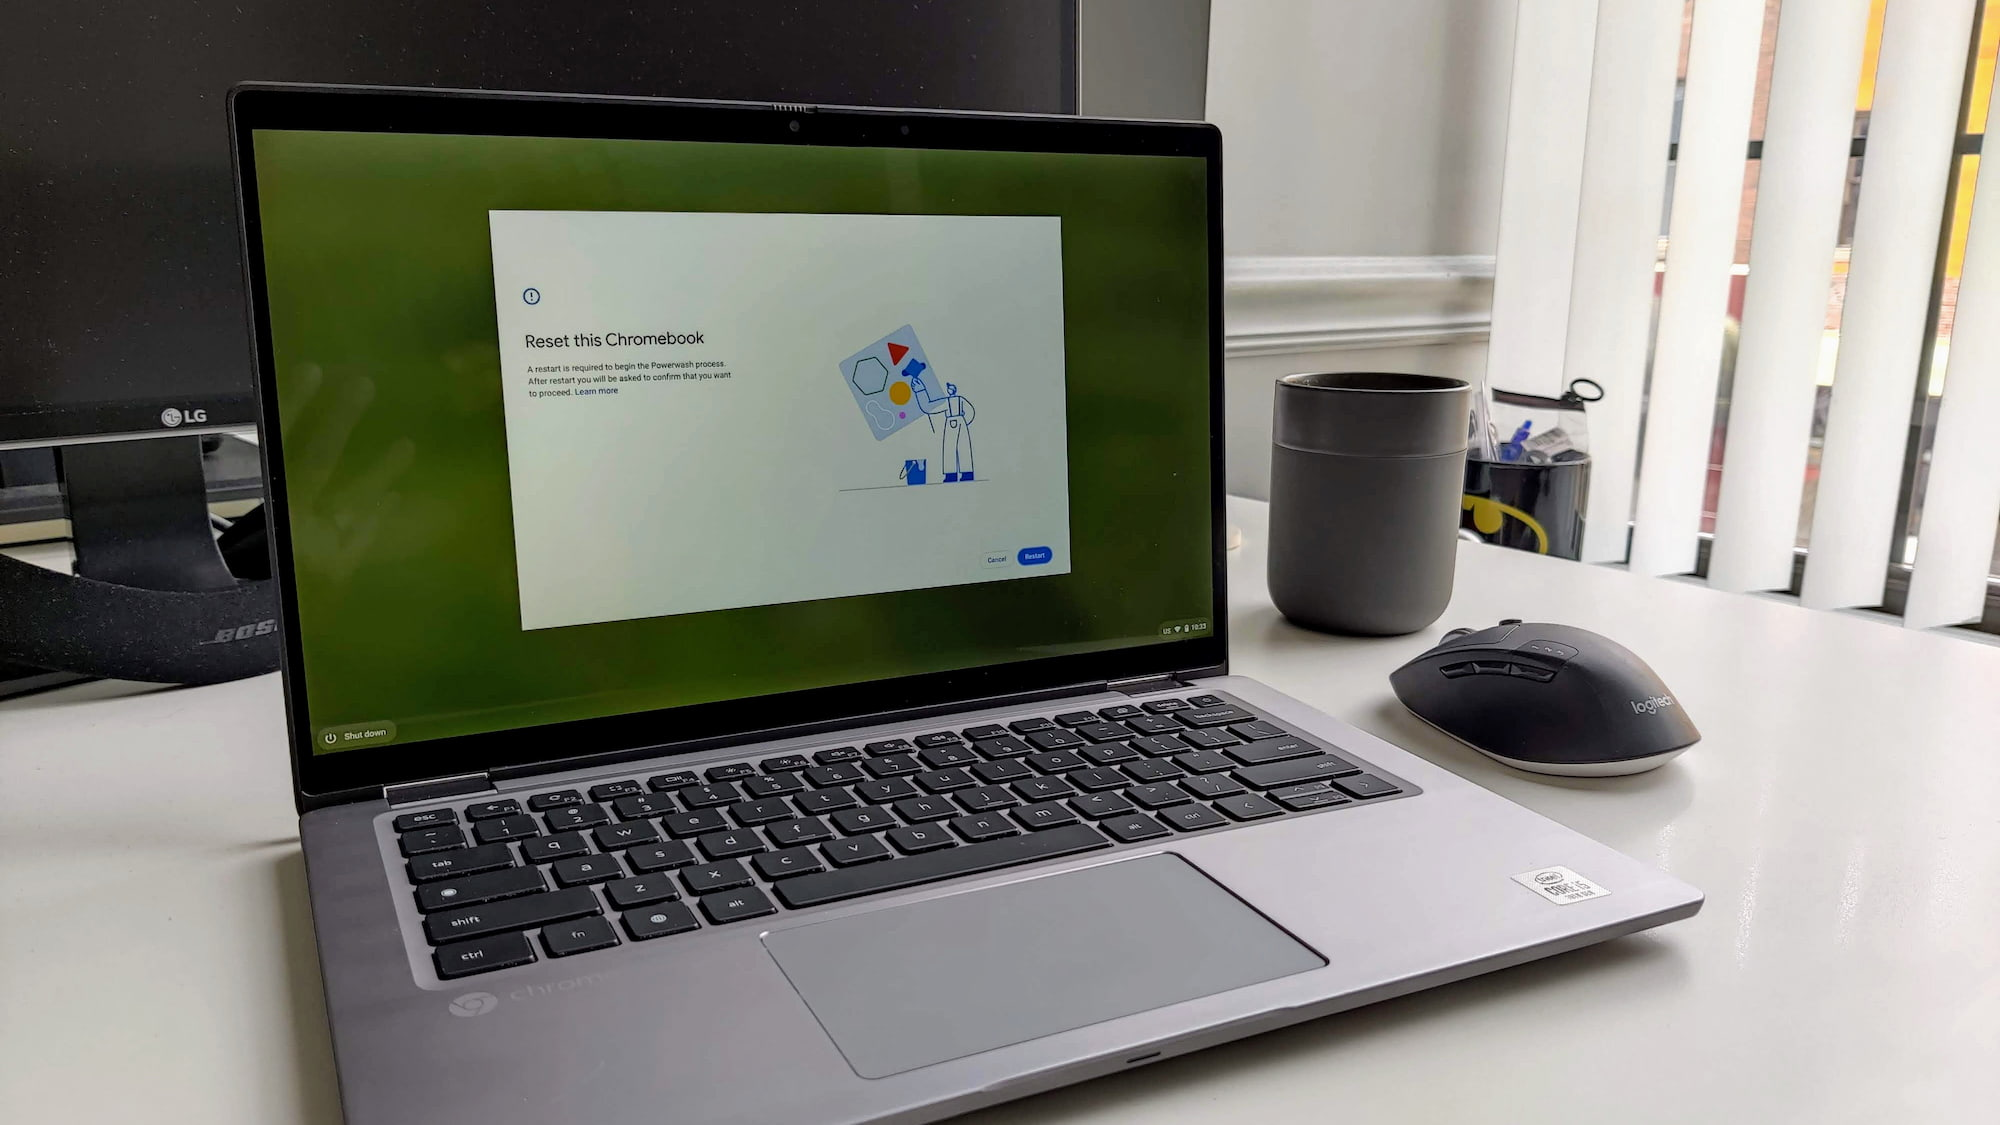 How to wipe a Chromebook (A.K.A – Powerwash) and return it to factory settings